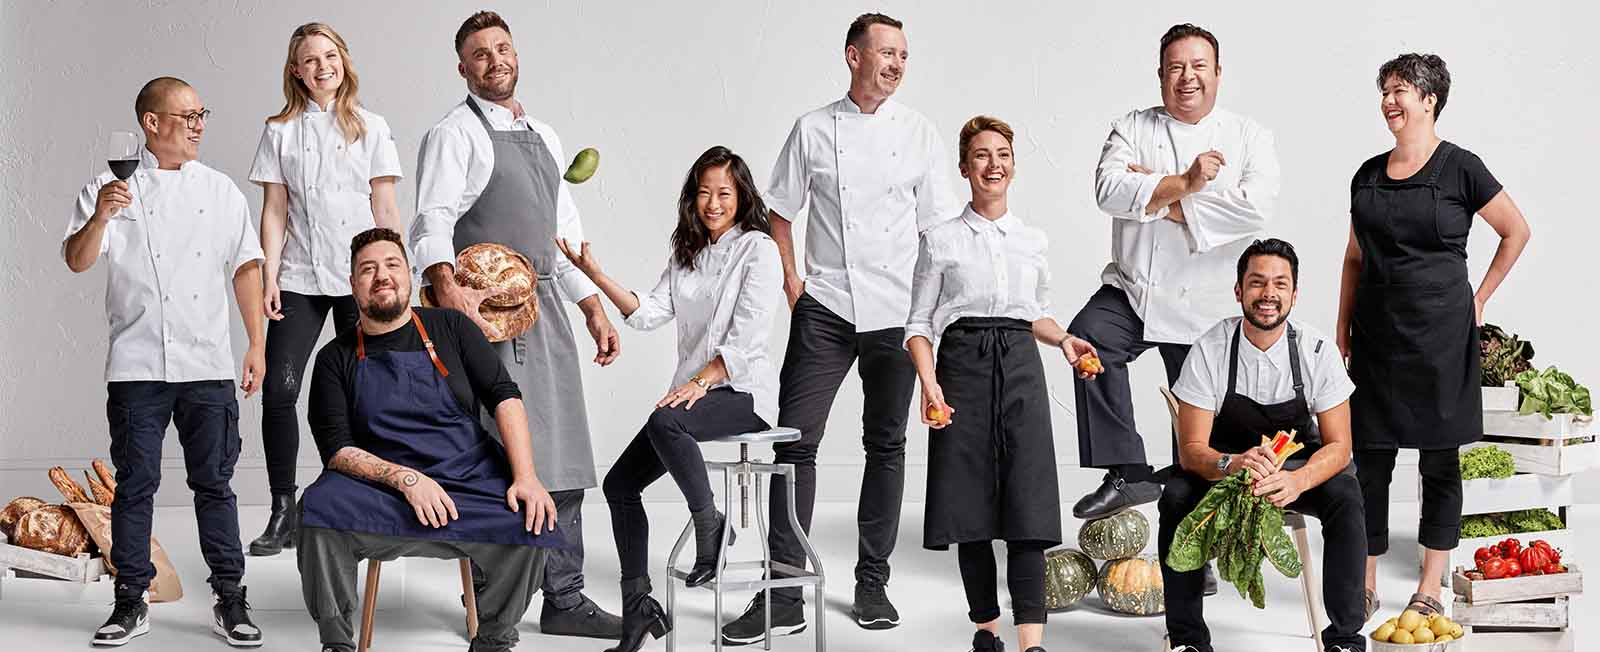 The 10 Australian Chefs who will be participating in Gourmet Institute 2020.